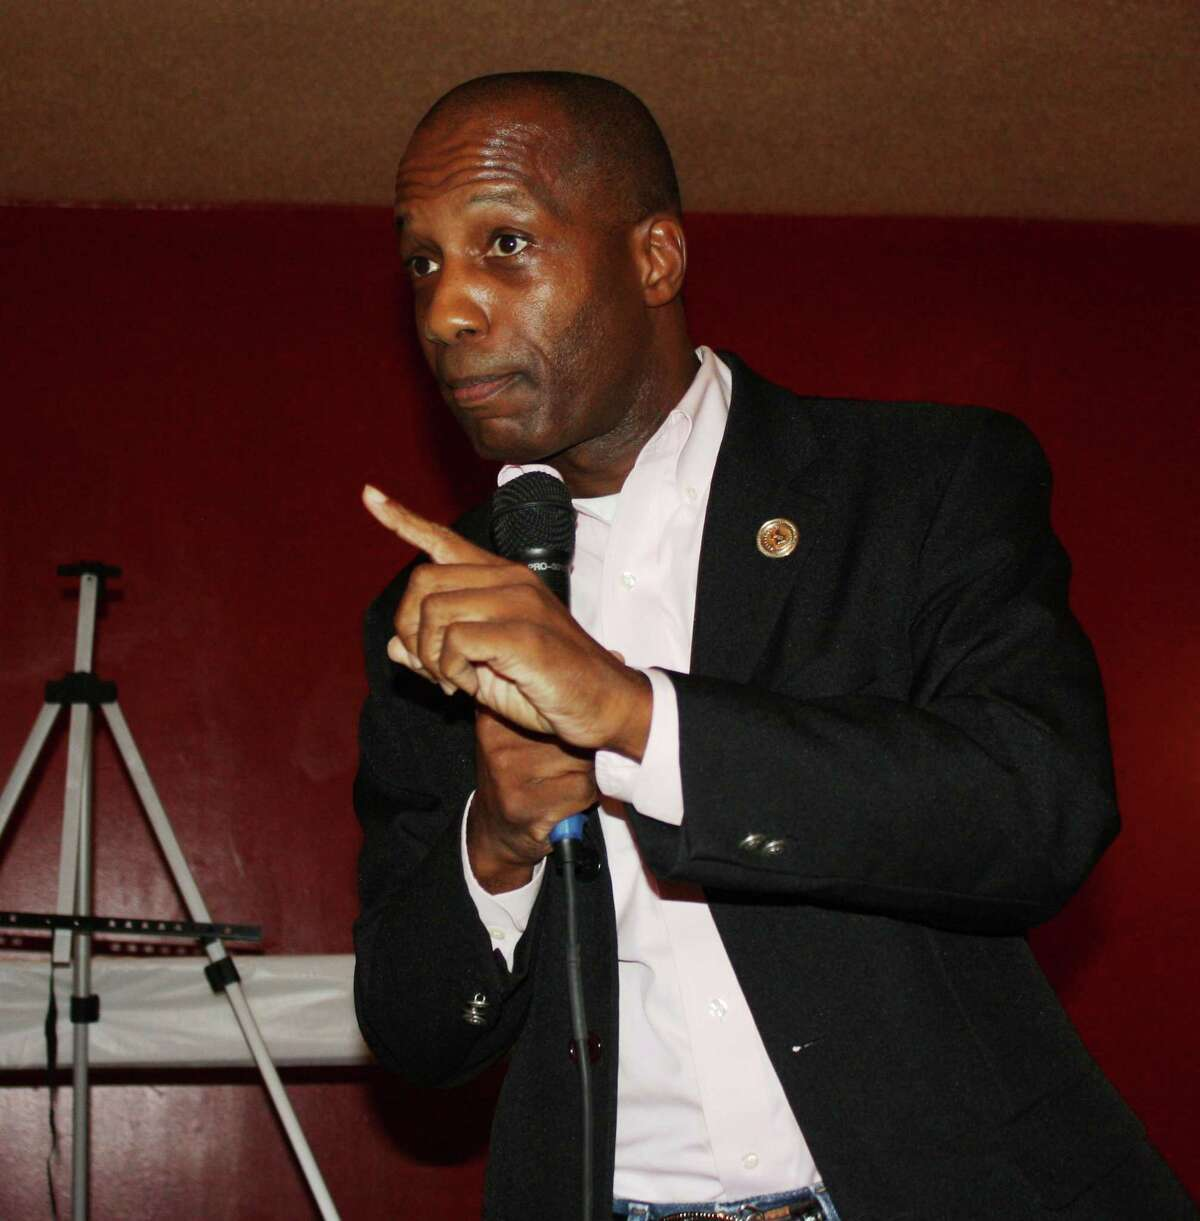 State Rep. James White was the guest speaker for the Tri-County Texas Tea Party on Aug. 14. He discussed the need to cut spending at the state and federal levels.